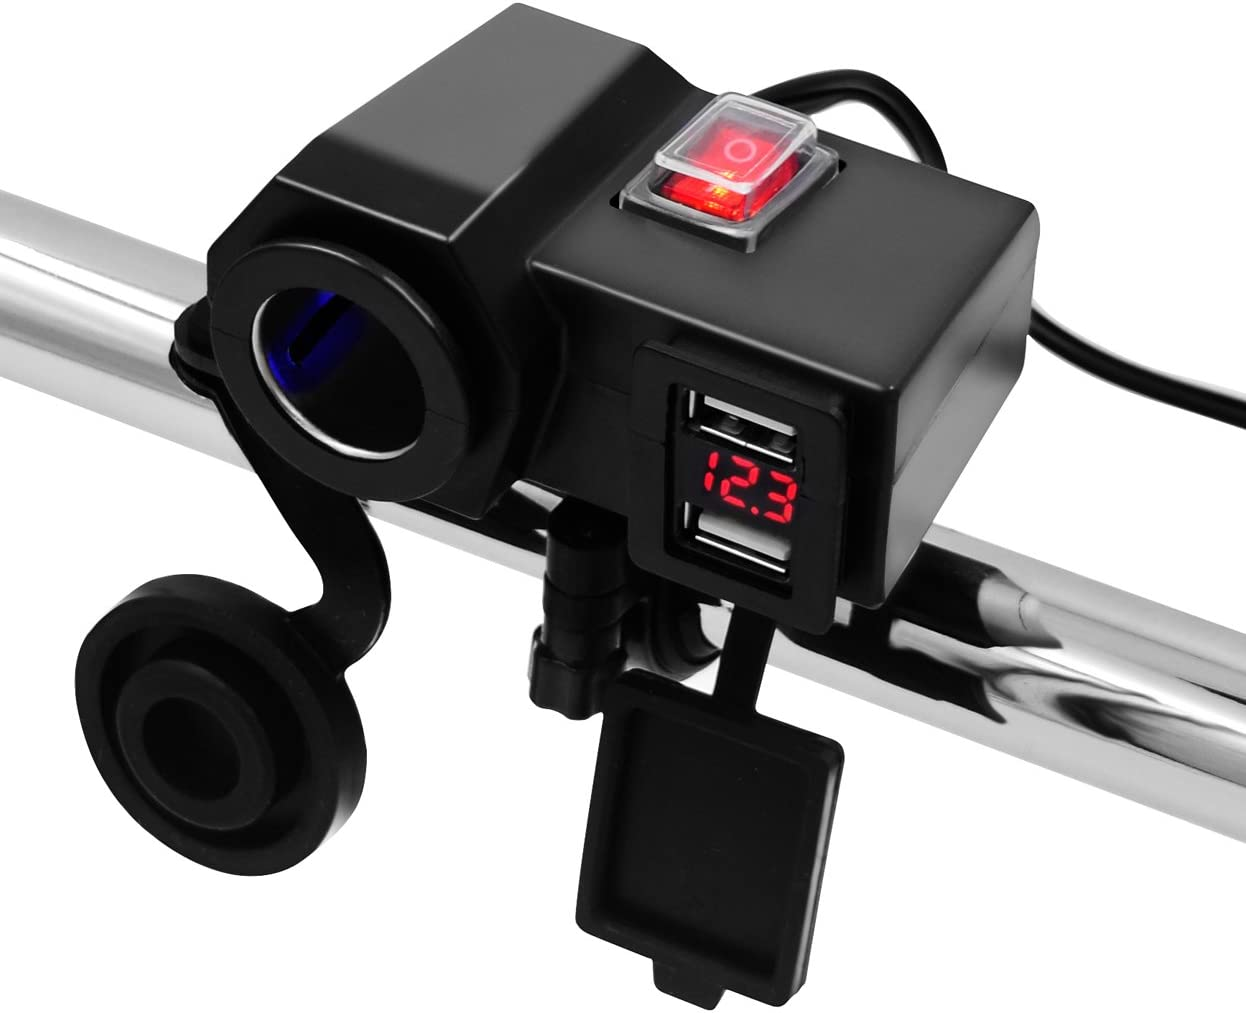 1x Dual USB Motorcycle Handlebar Mirror Bracket 3.1A Charger with Waterproof Cap